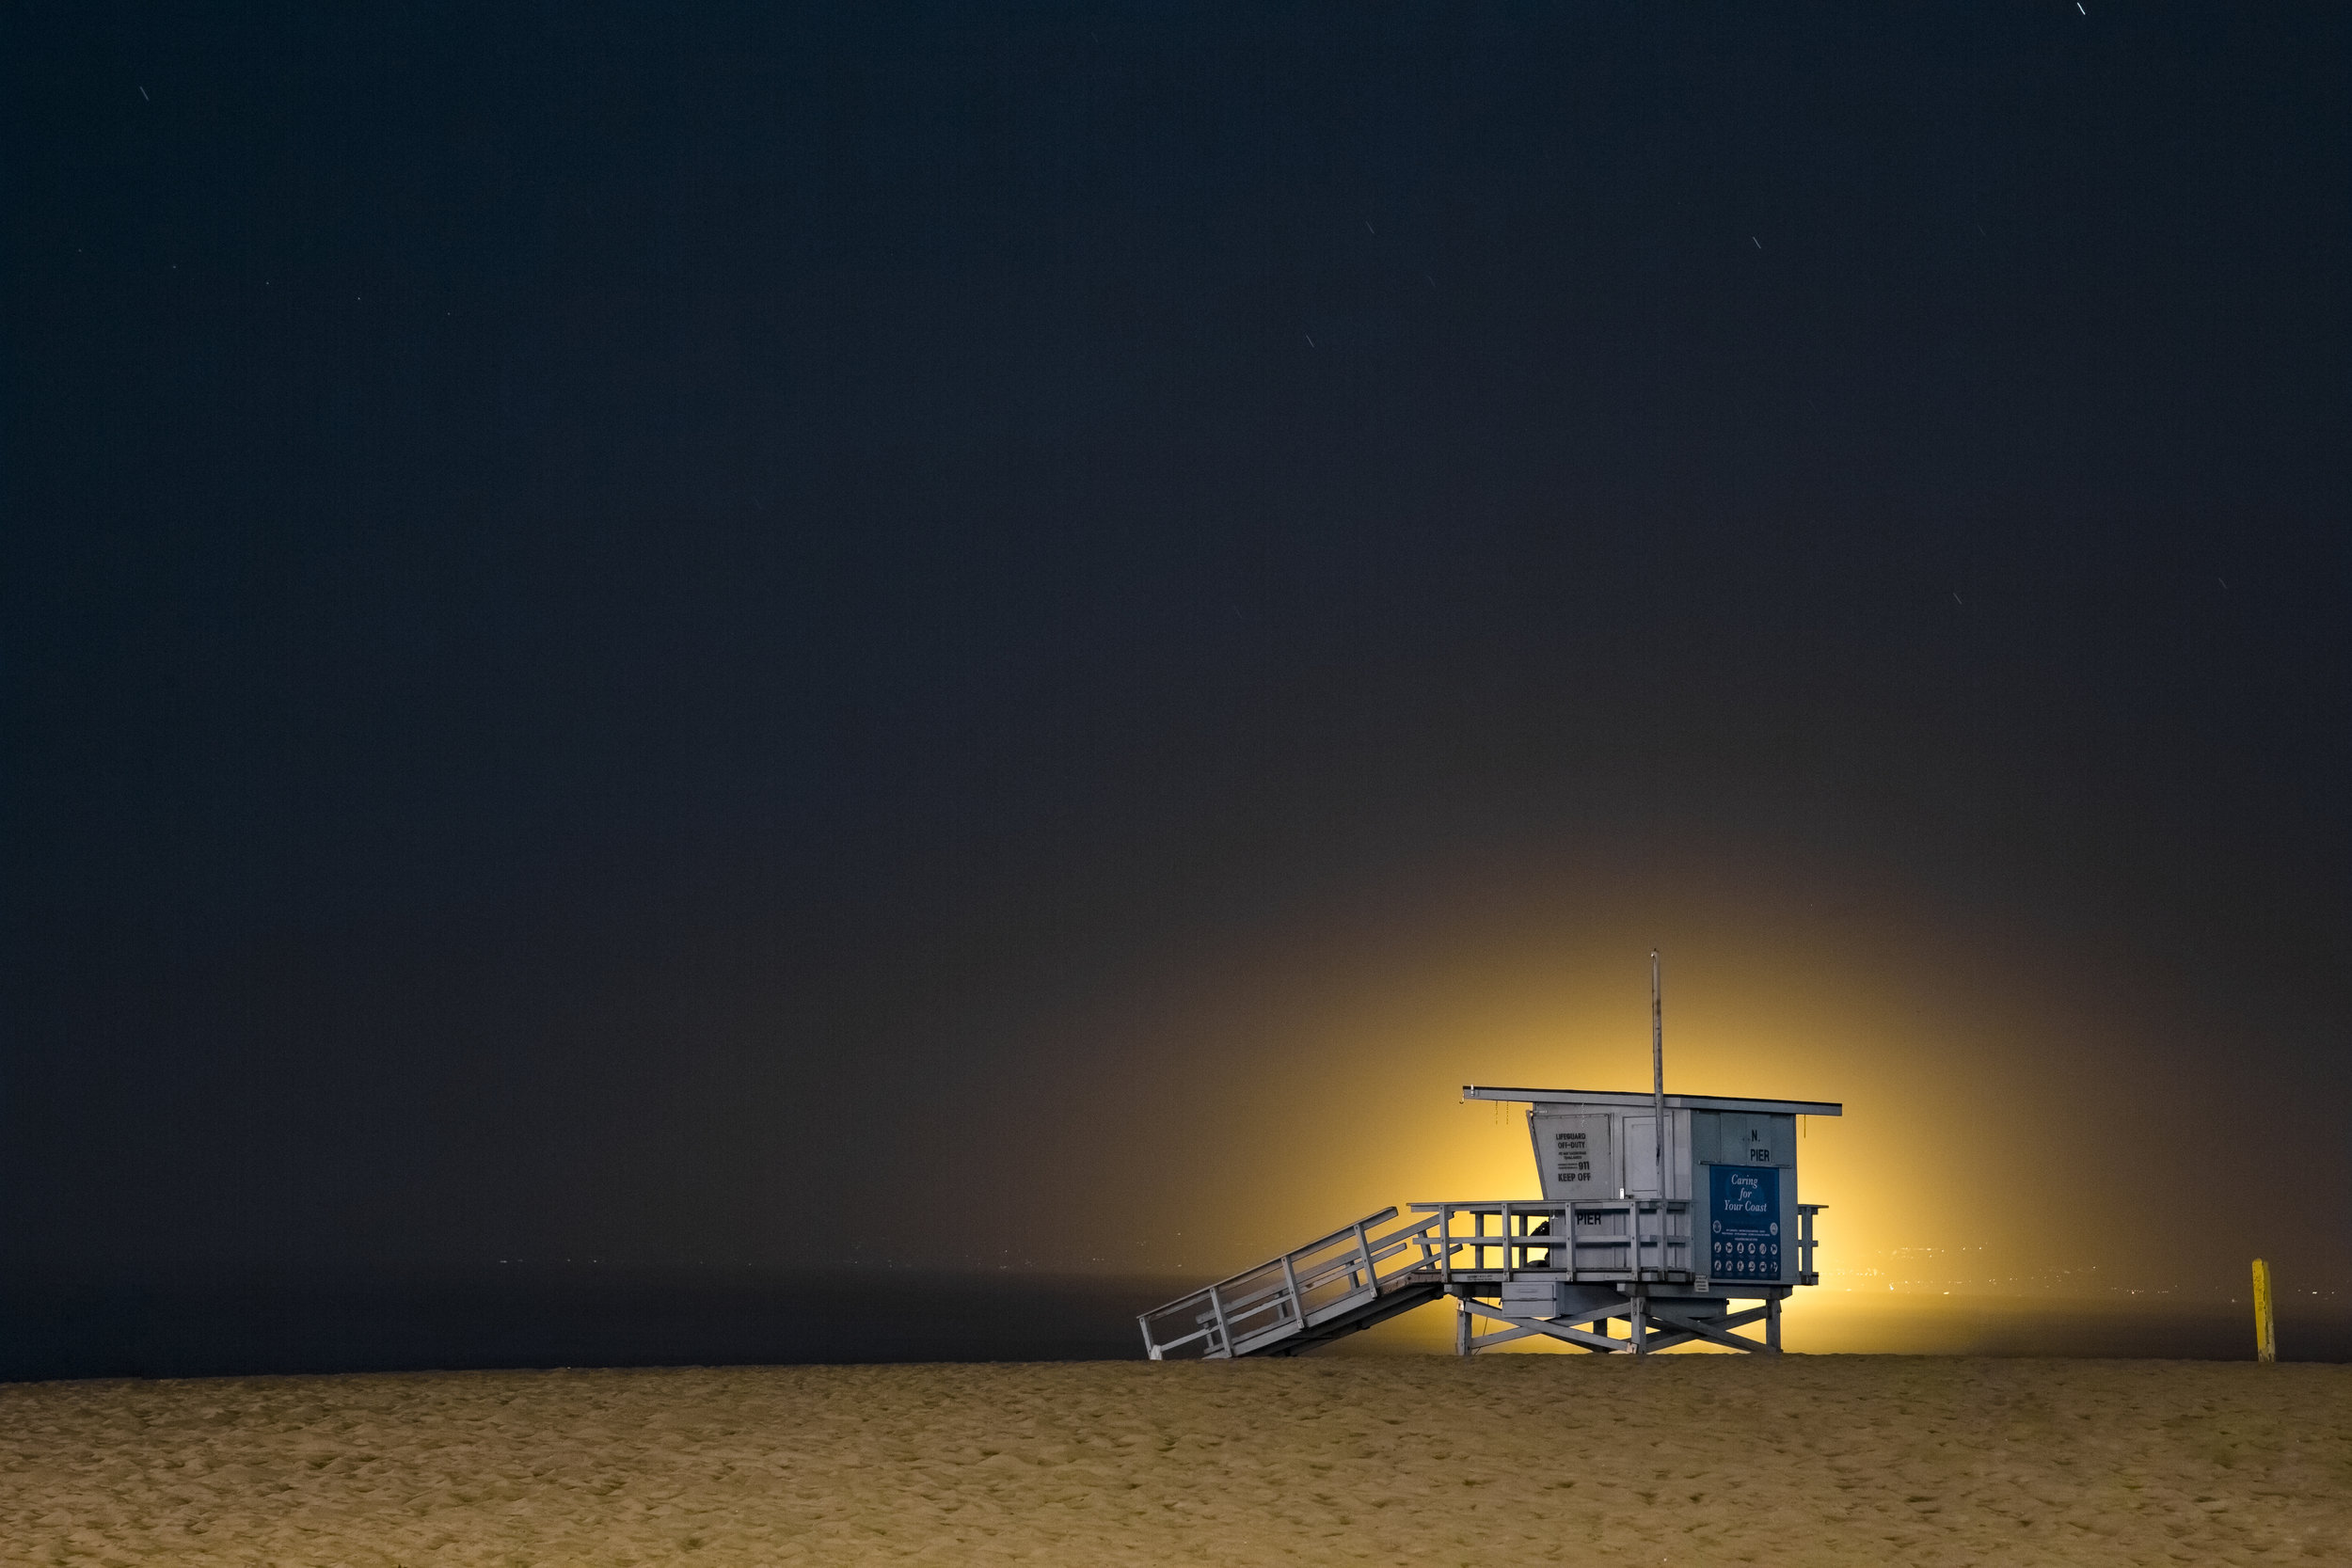 Night photography at the Manhattan Beach pier on December 7, 2016.